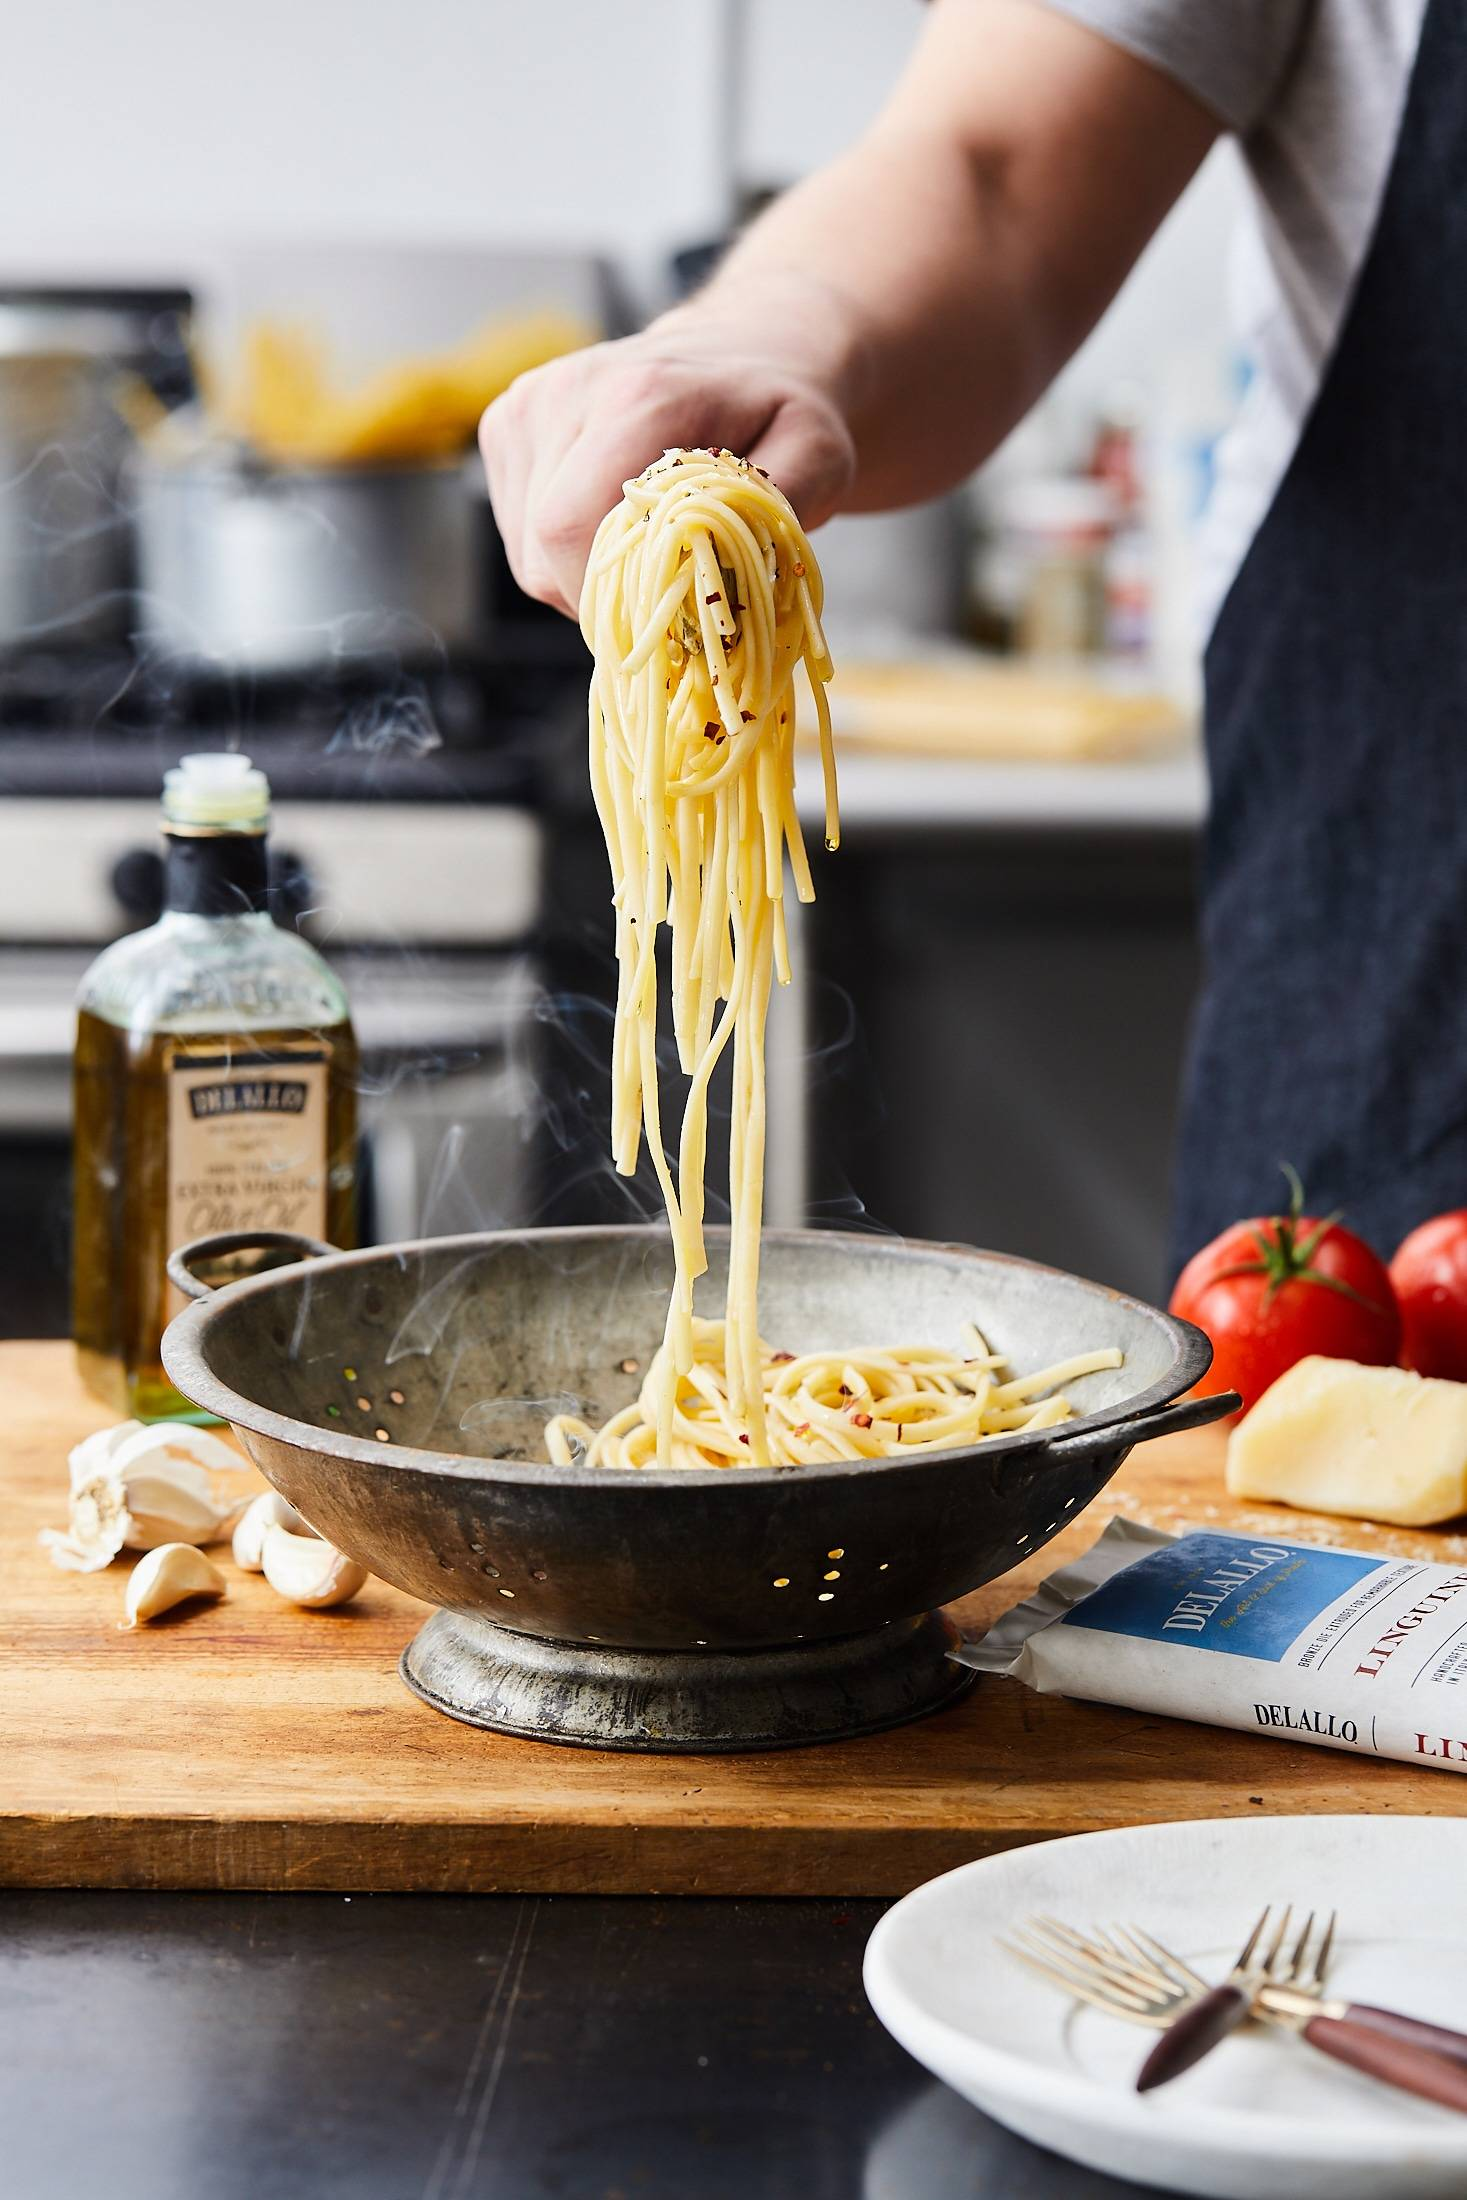 How To Cook Perfect Pasta - DeLallo